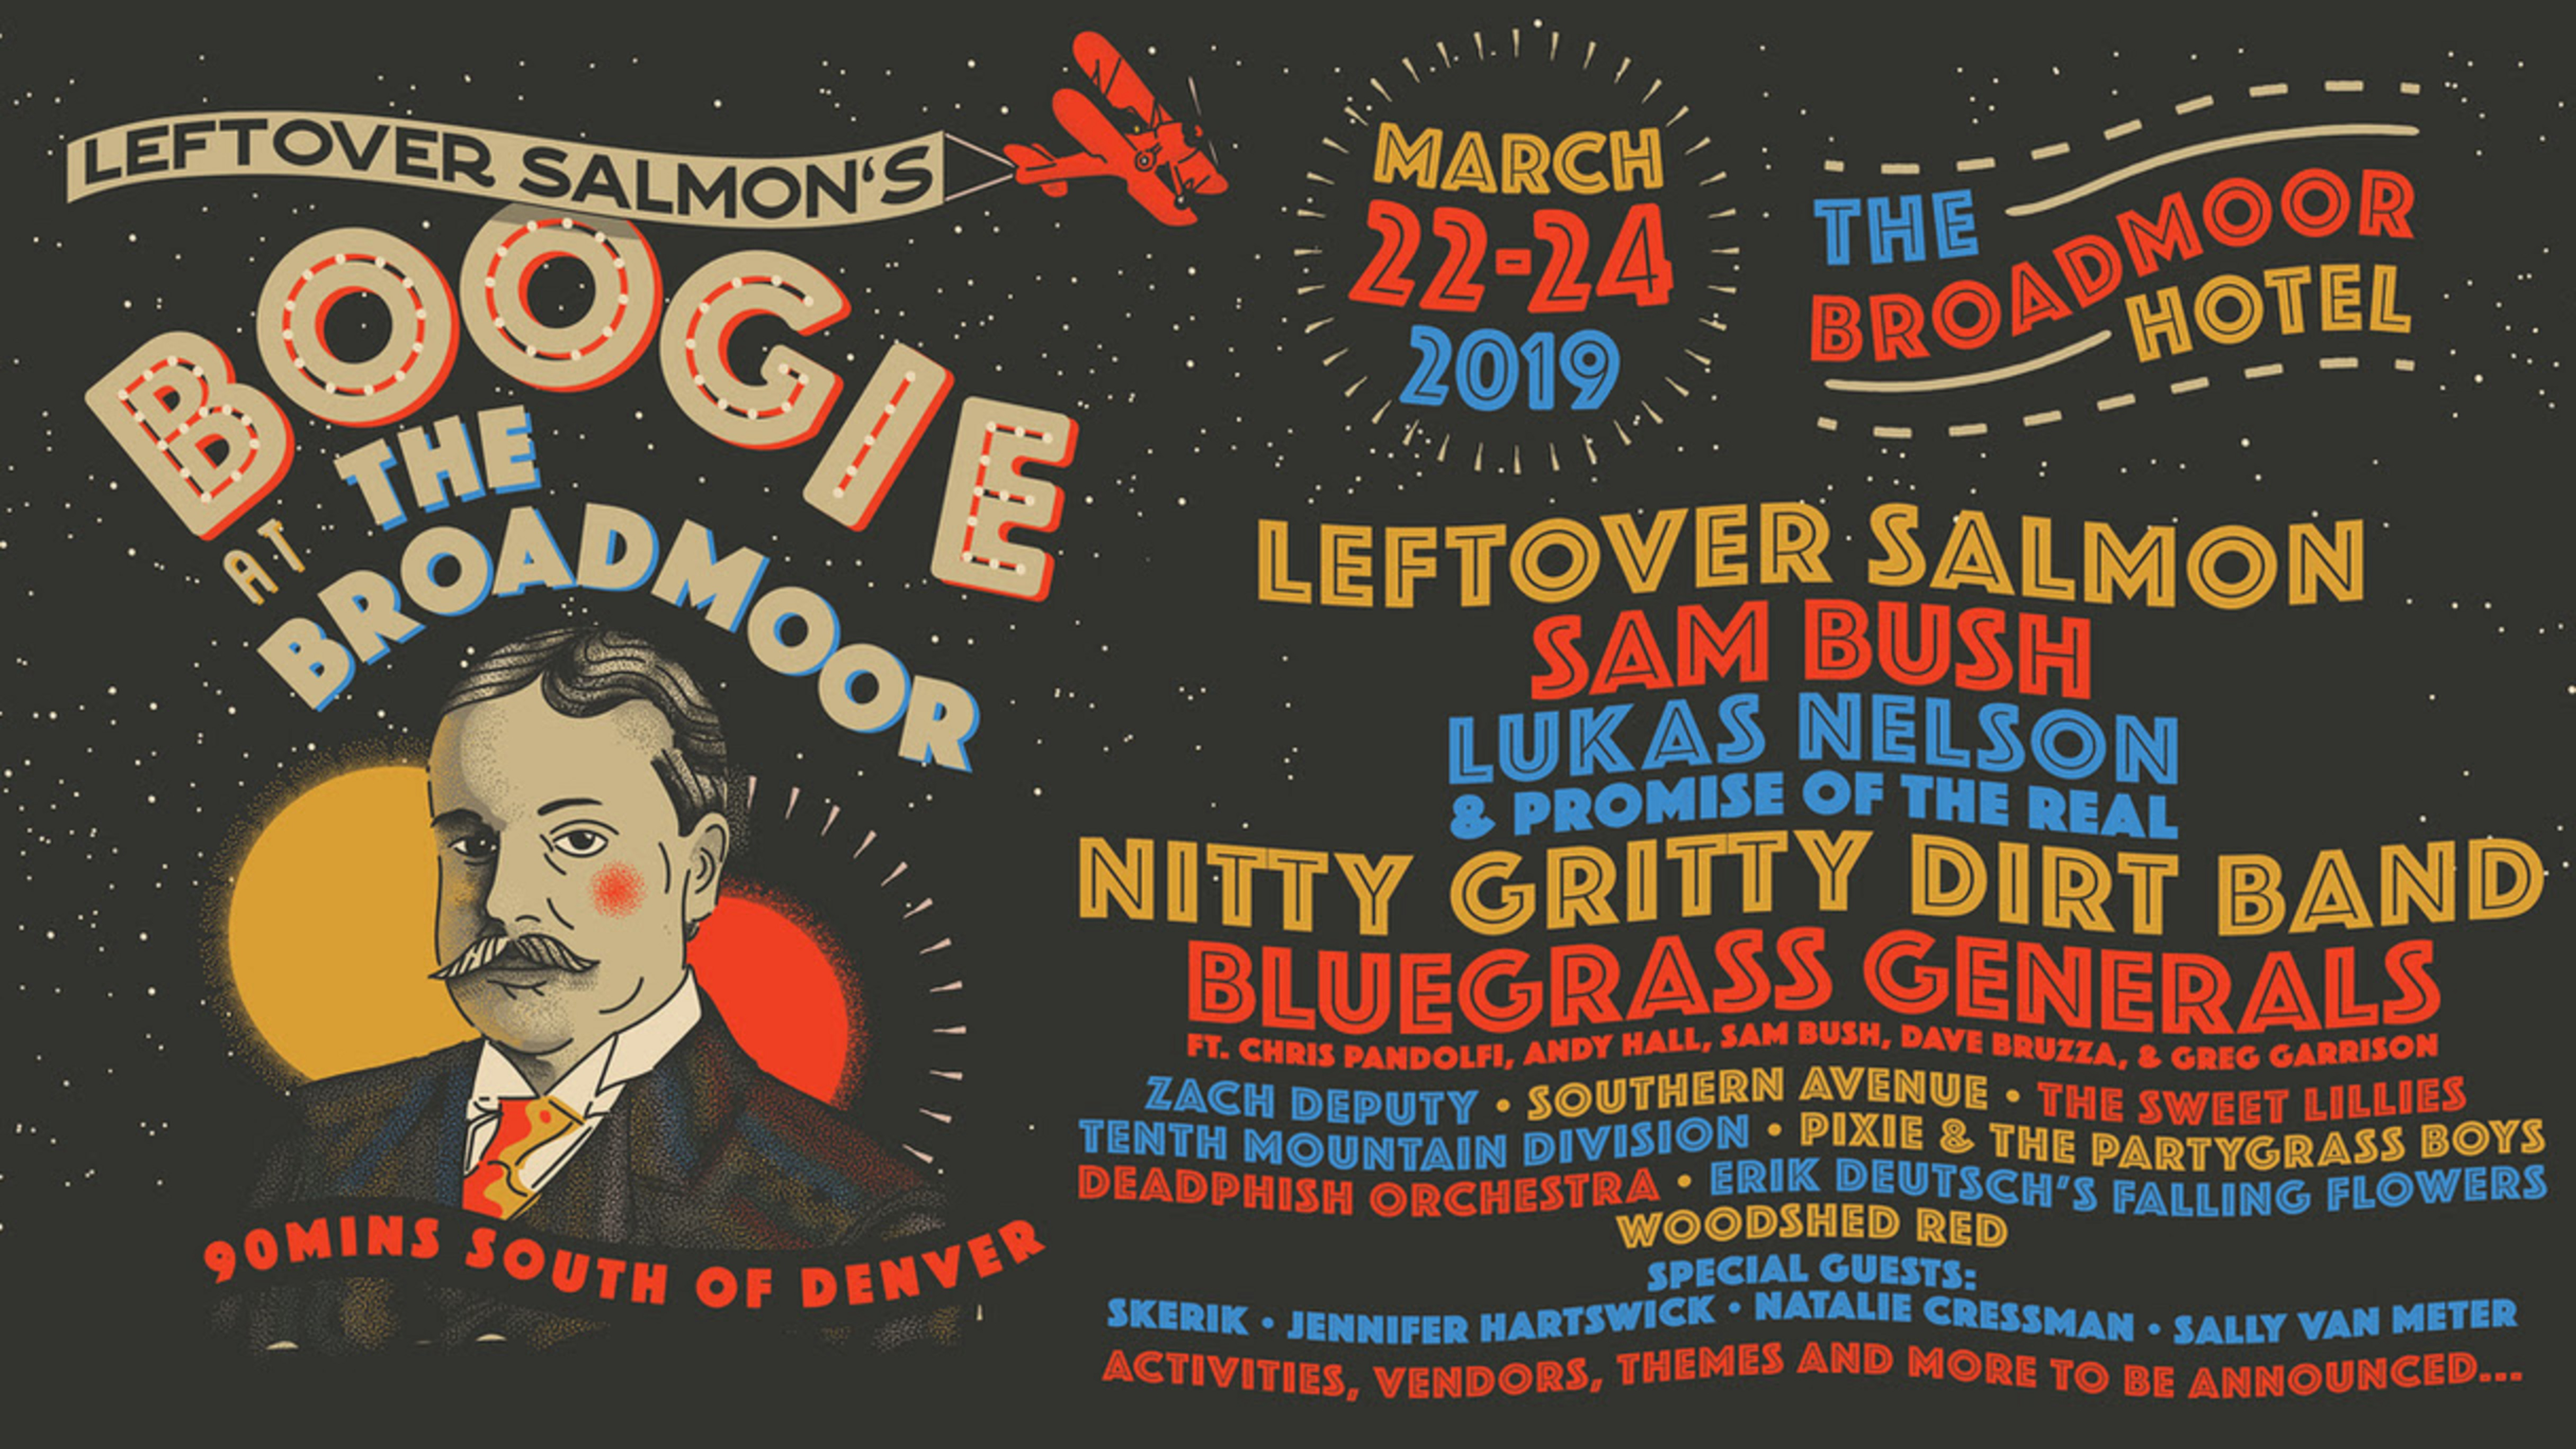 Sam Bush, Bluegrass Generals, Zach Deputy, and More Added to Leftover Salmon's Boogie At The Broadmoor